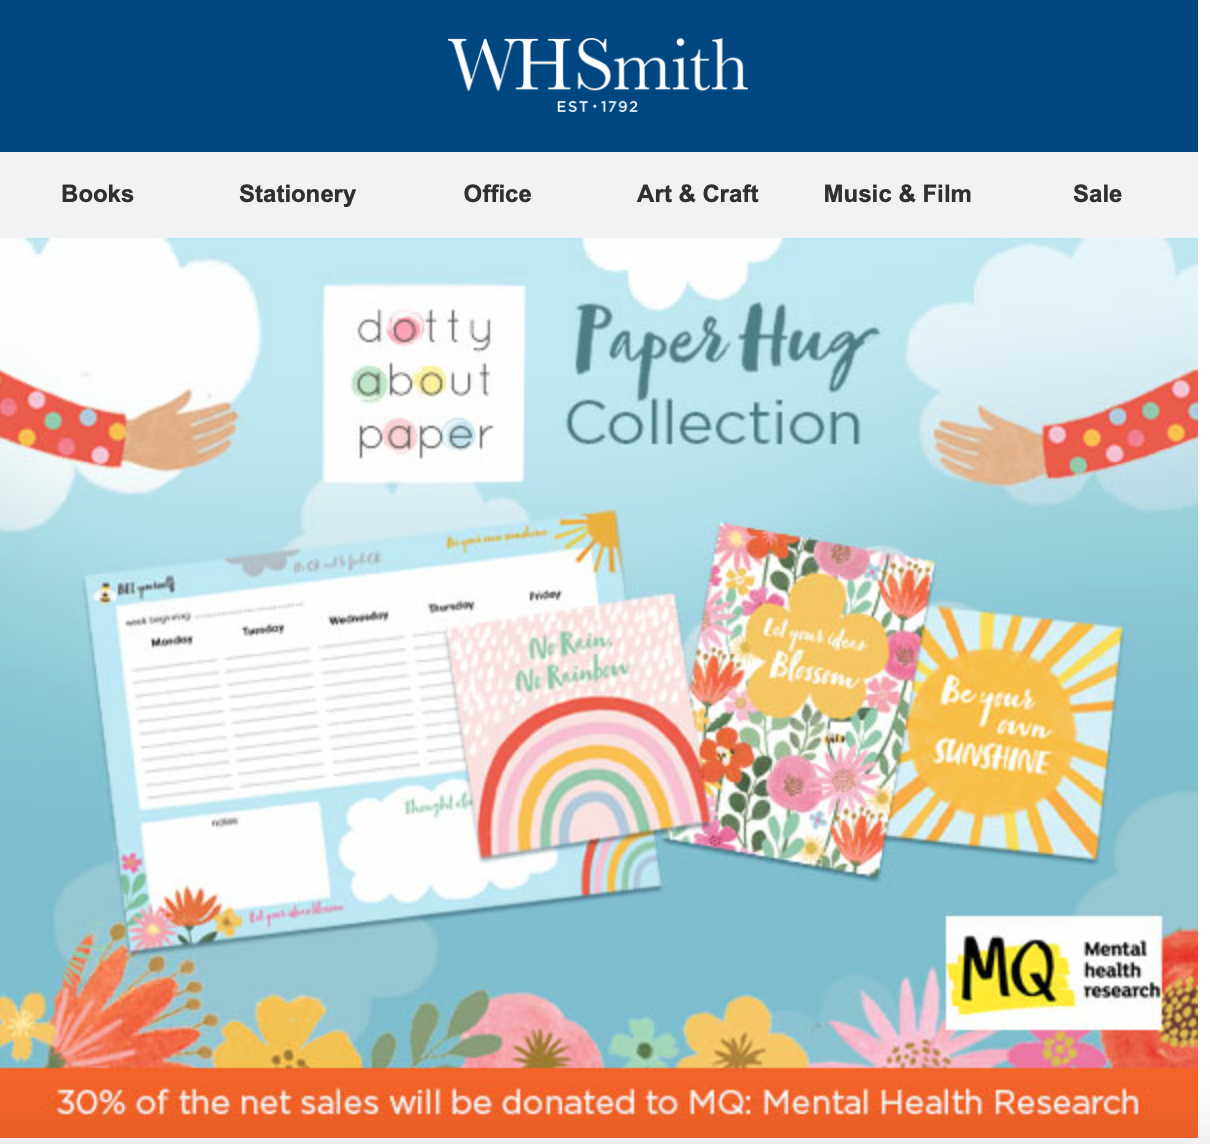 Above: WHSmith has created emailers to promote the Paper Hug Collection.